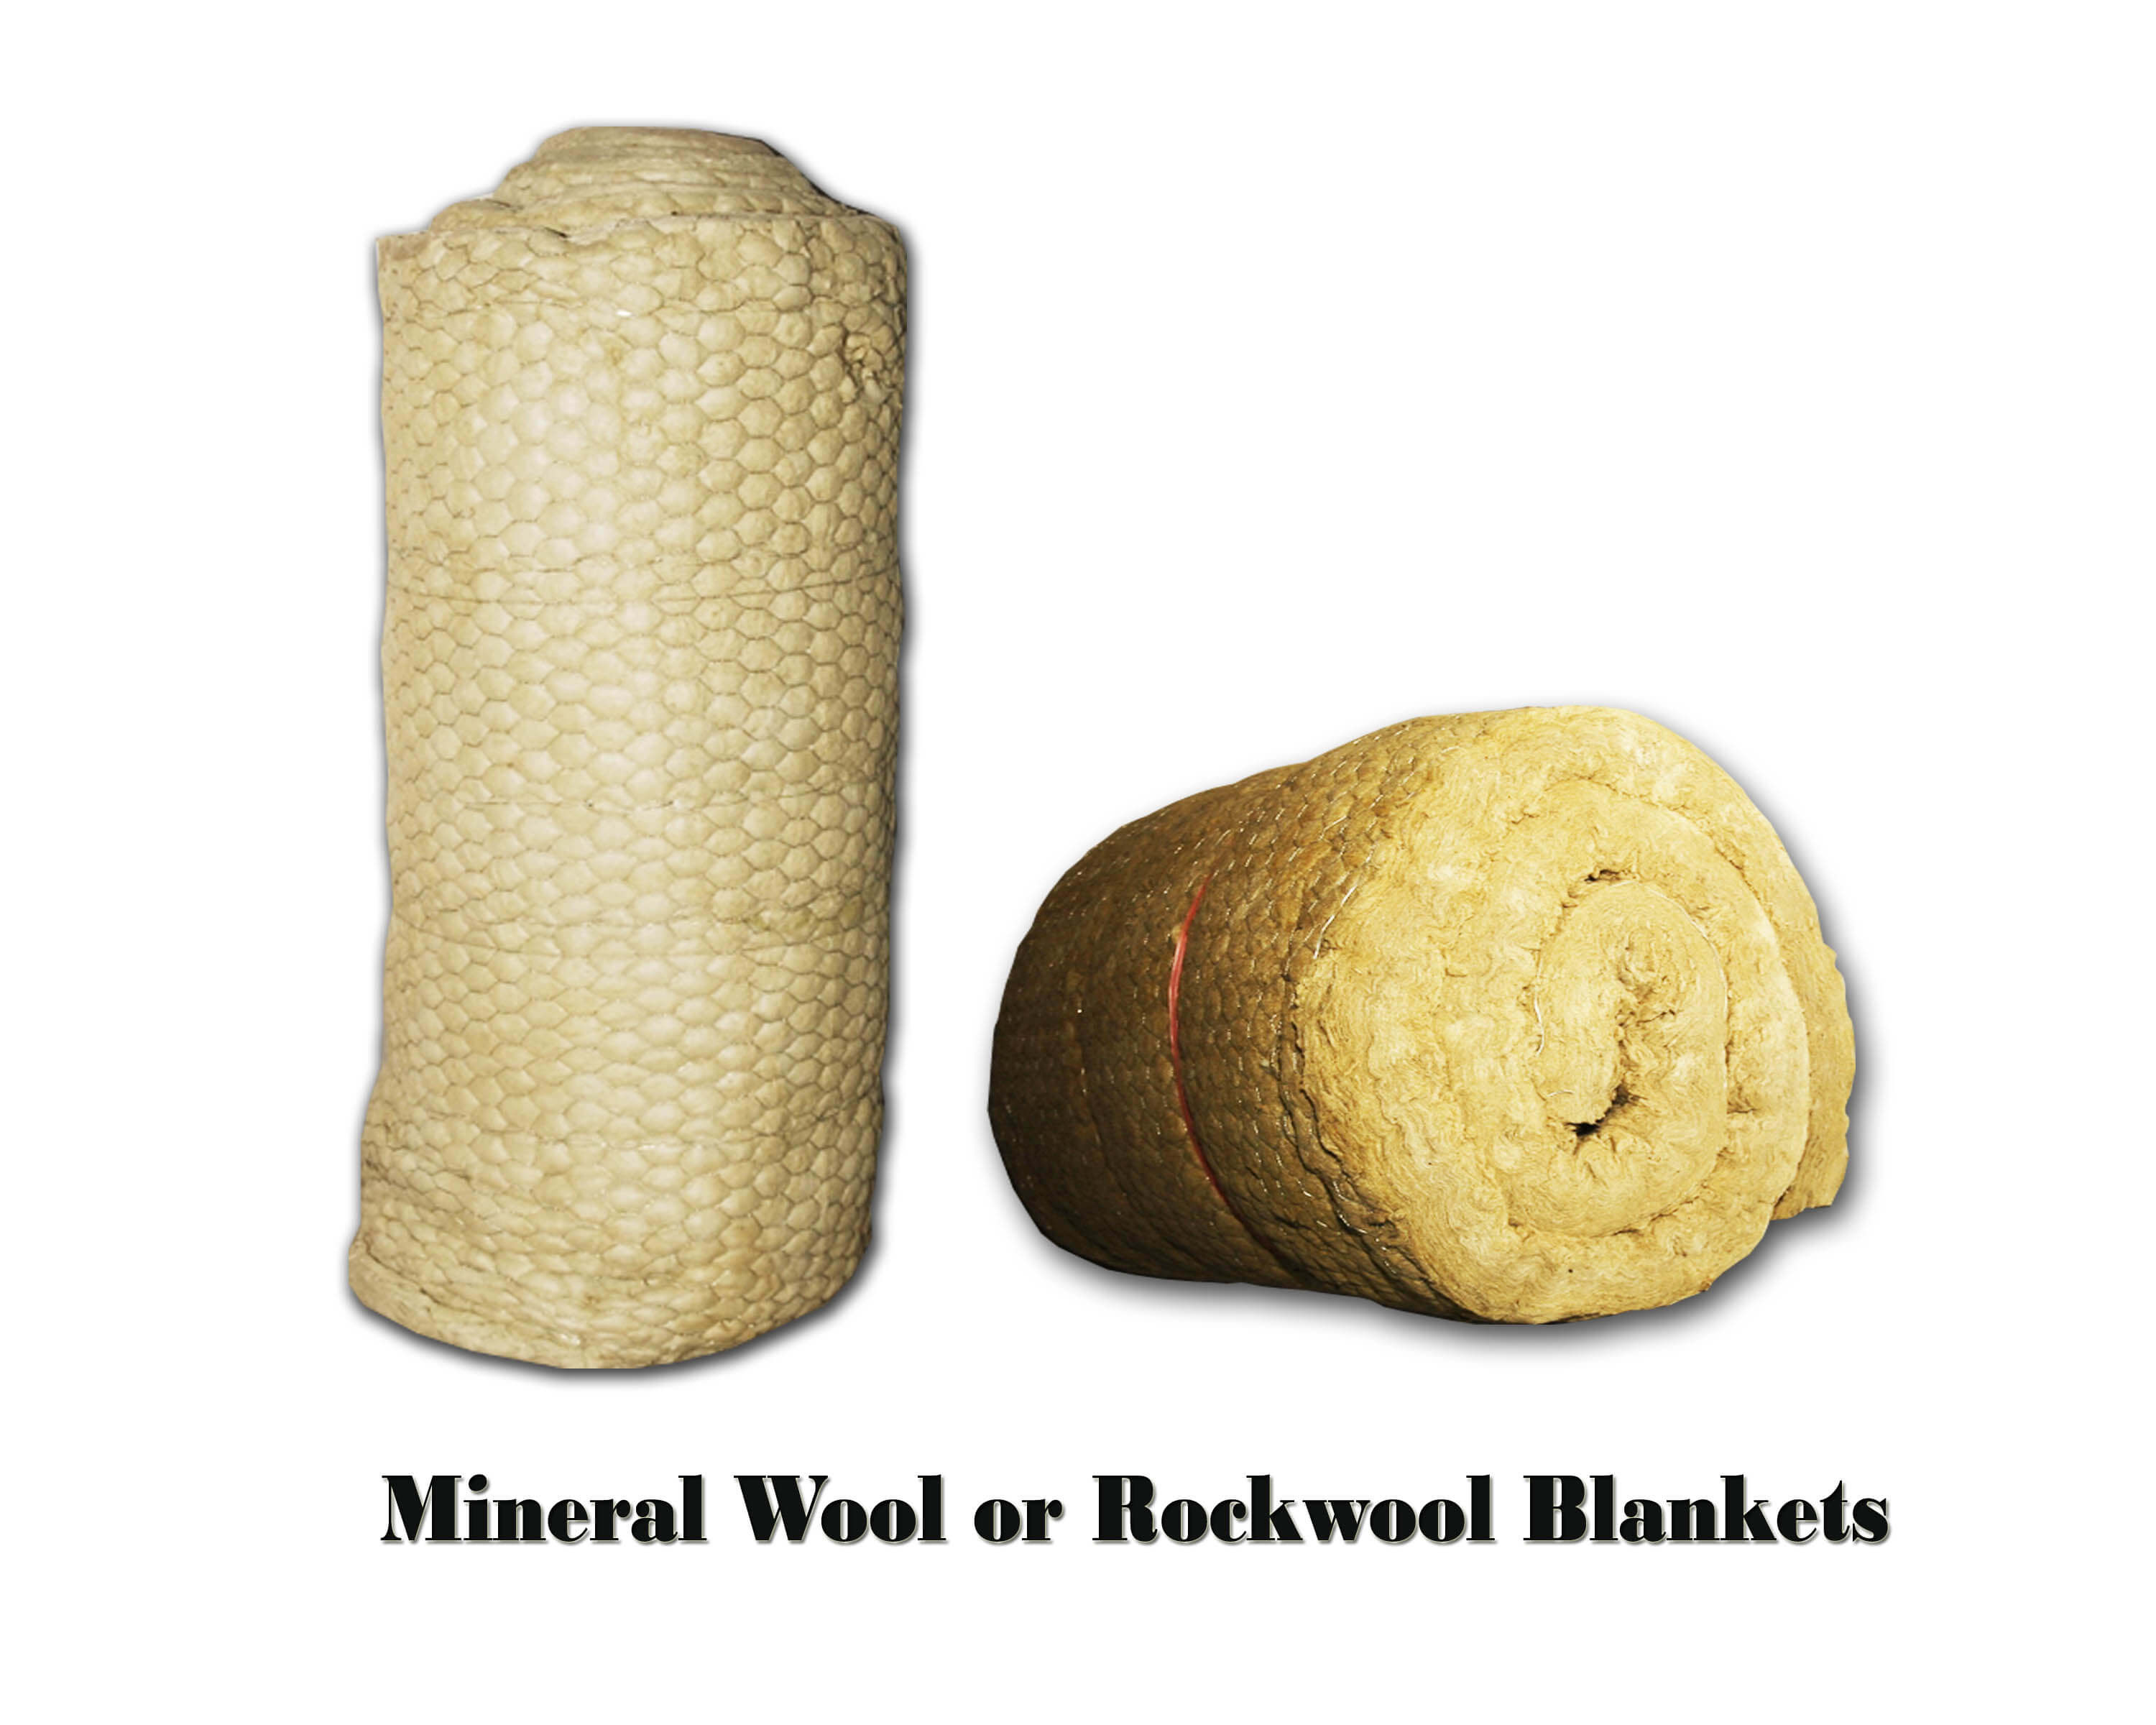 Rockwool or Mineral Wool Products